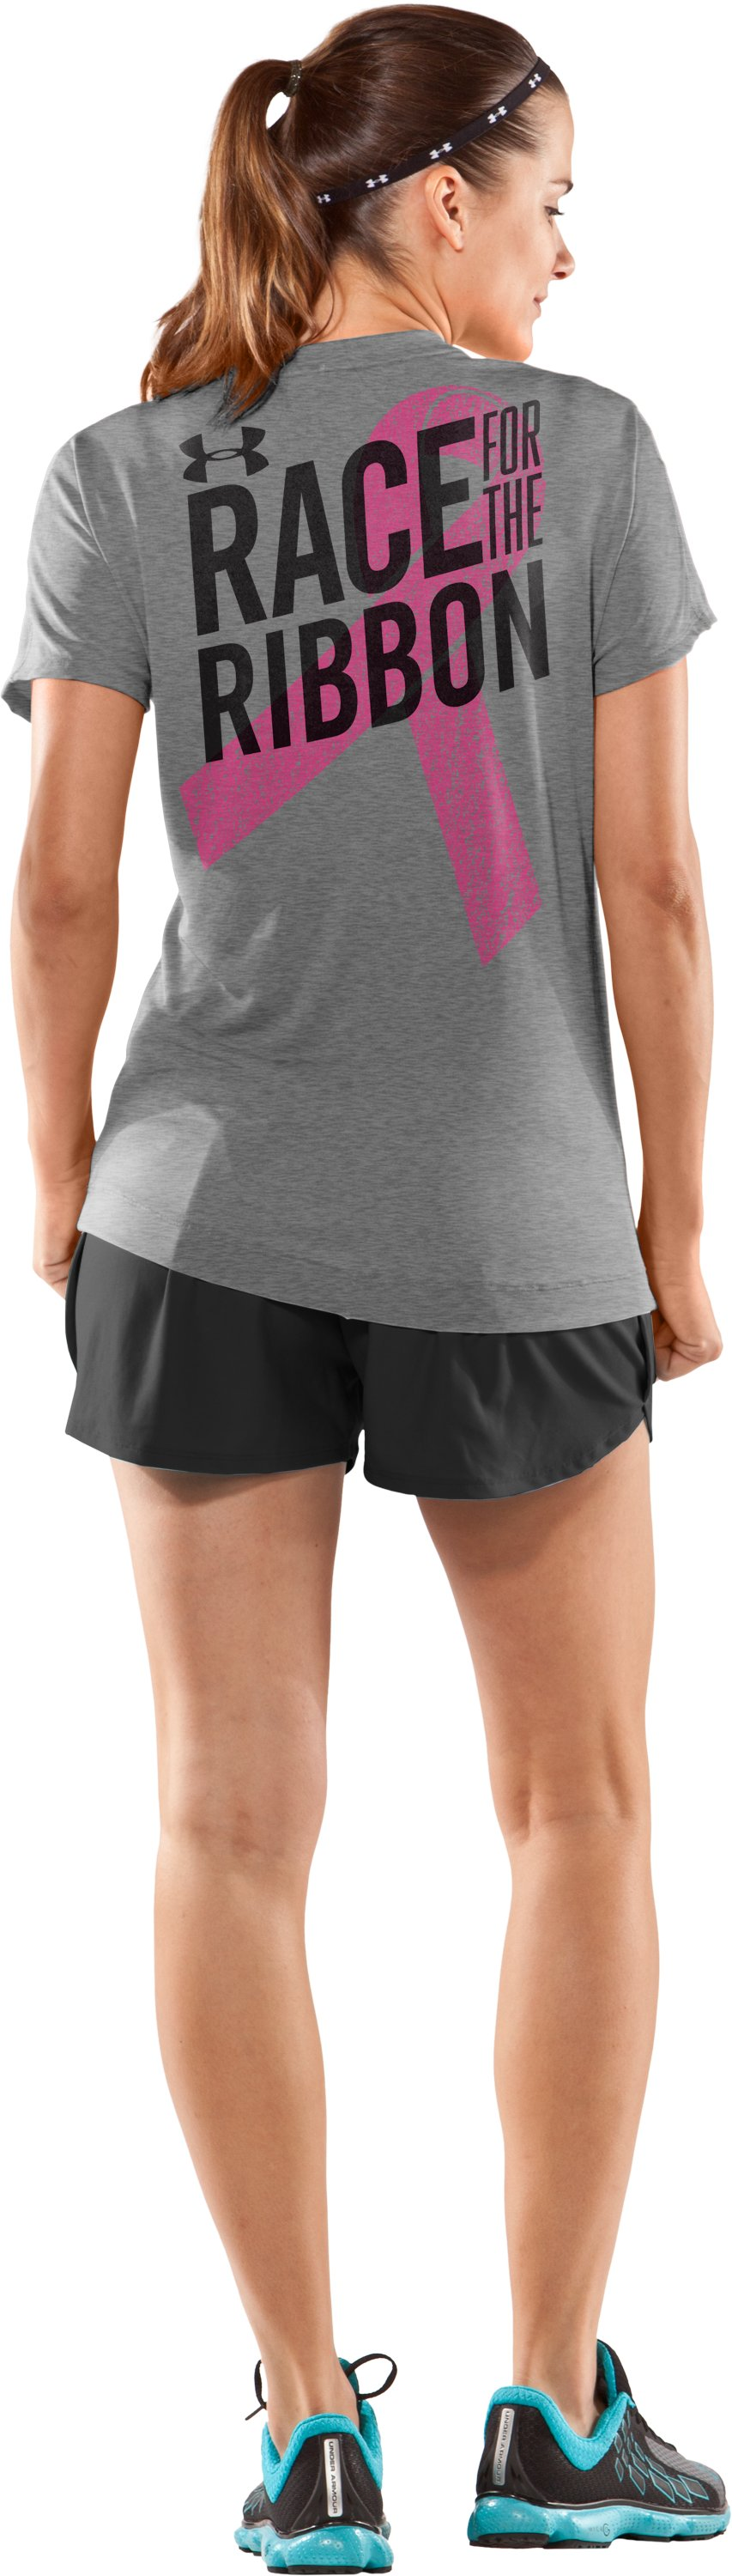 Women's PIP® Race For The Ribbon V-Neck, True Gray Heather, Back